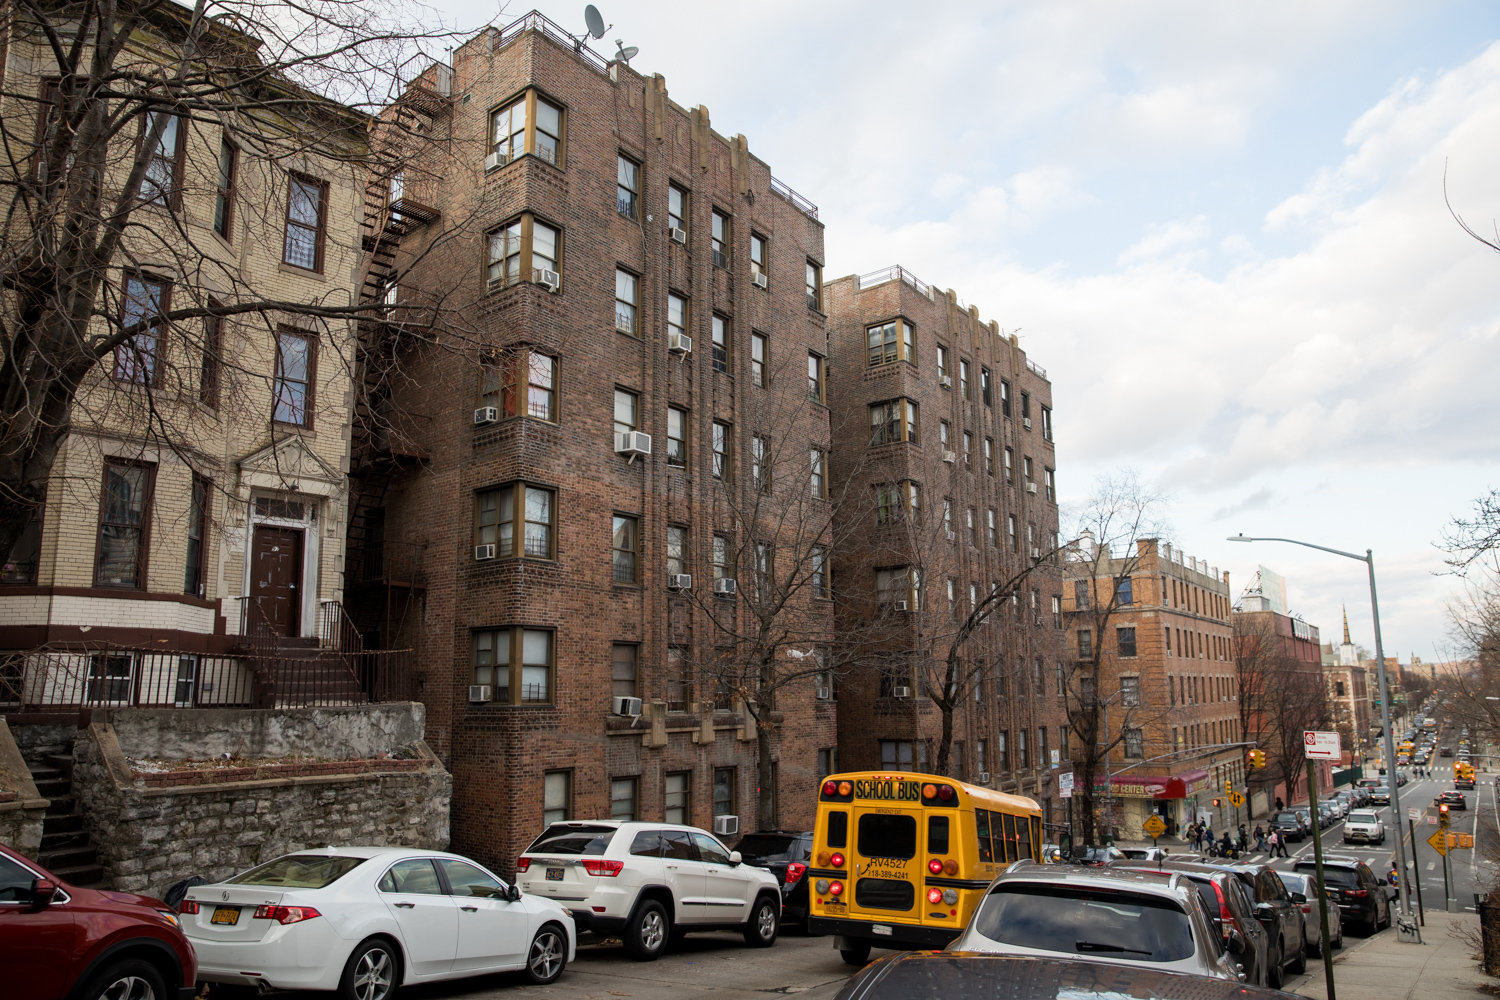 With the start of a new year comes the roundup of last year's worst landlords, which does not bode well for Richard Nussbaum, who ranked sixth on public advocate Jumaane Williams' list. Nussbaum owns two buildings, including an apartment structure at 99 Marble Hill Ave.